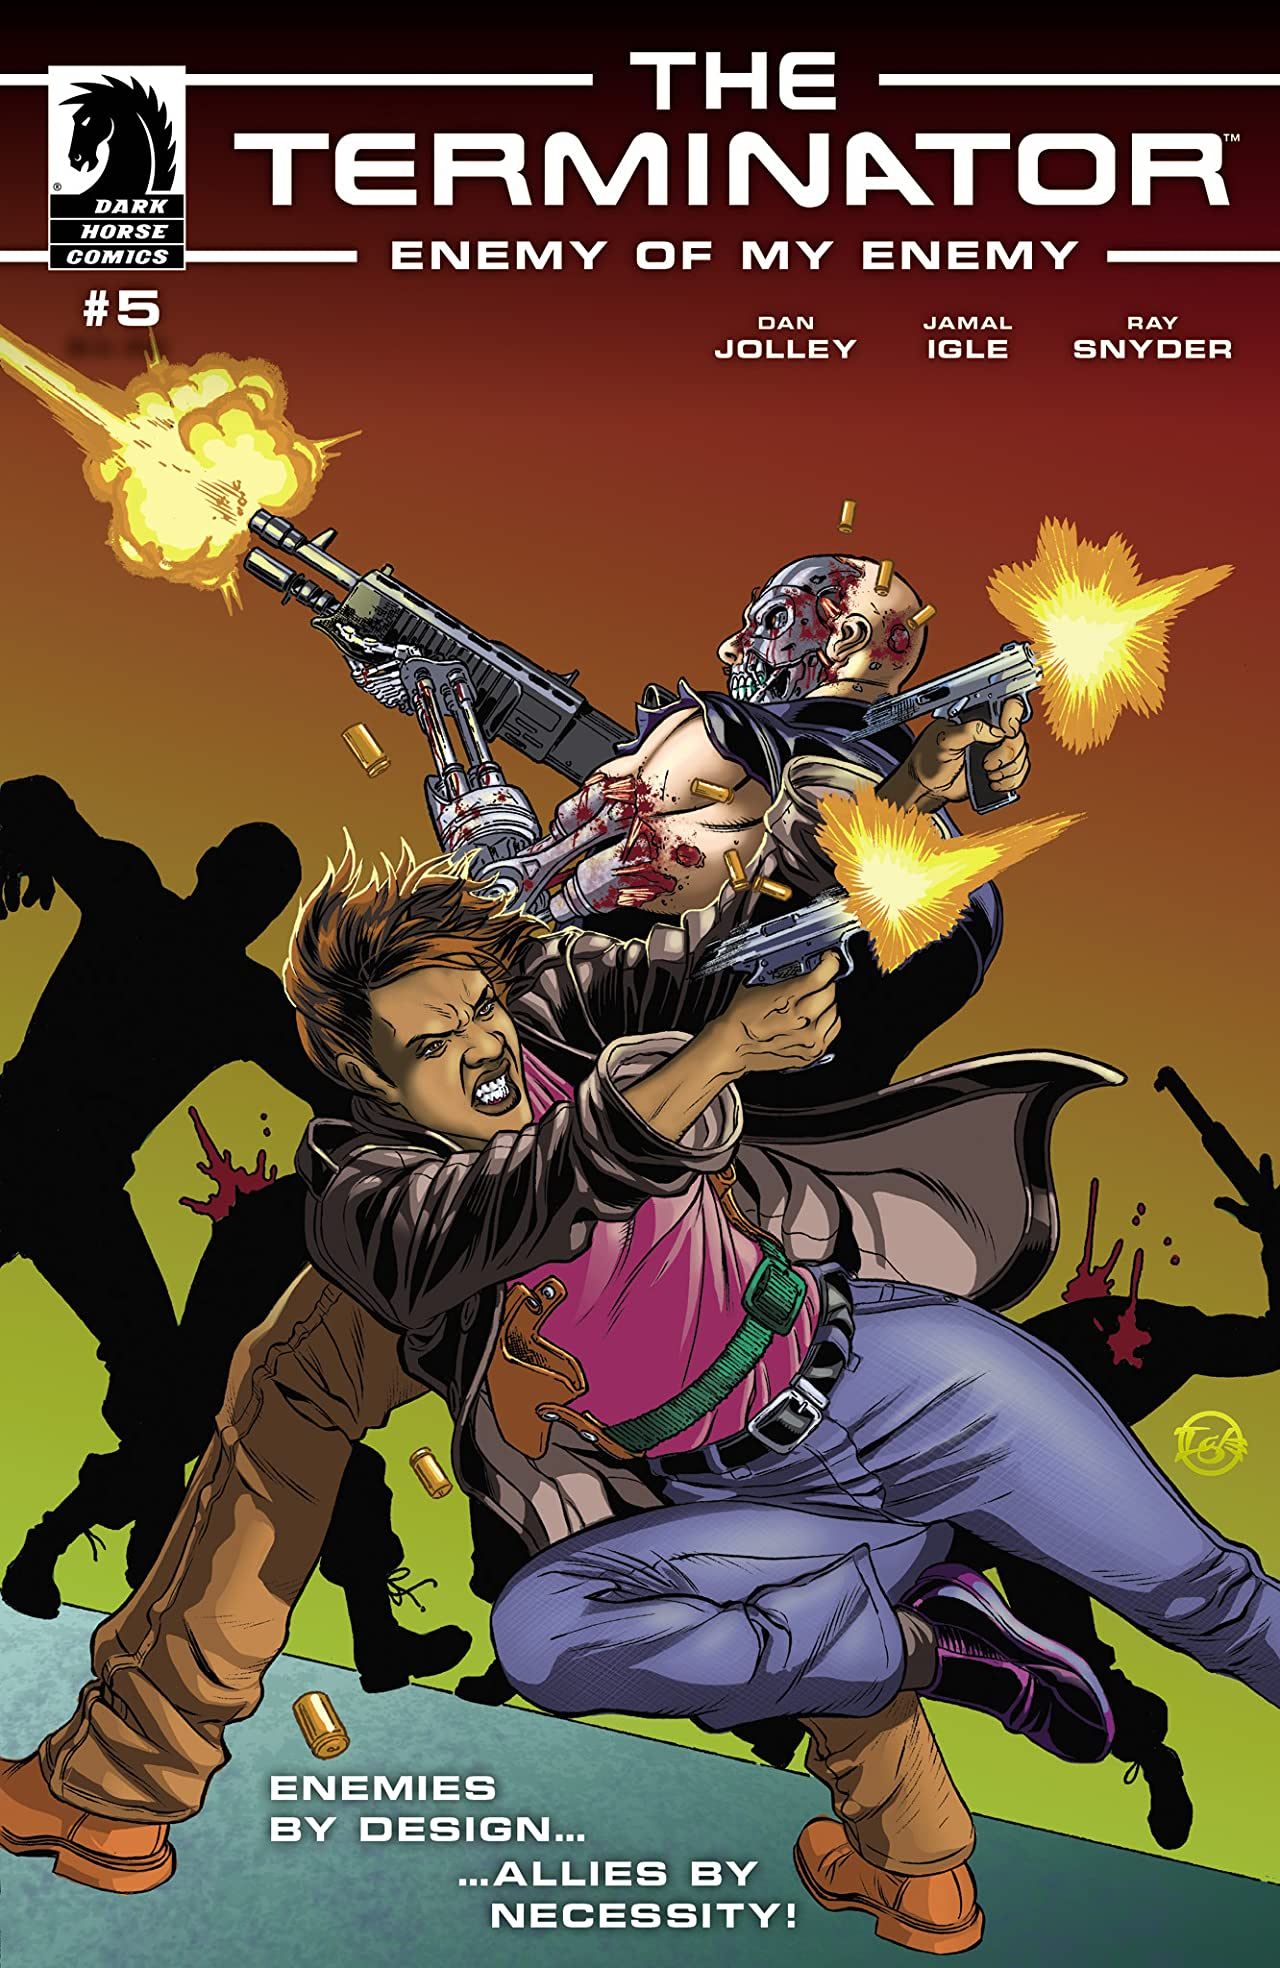 The Terminator: Enemy of My Enemy #5